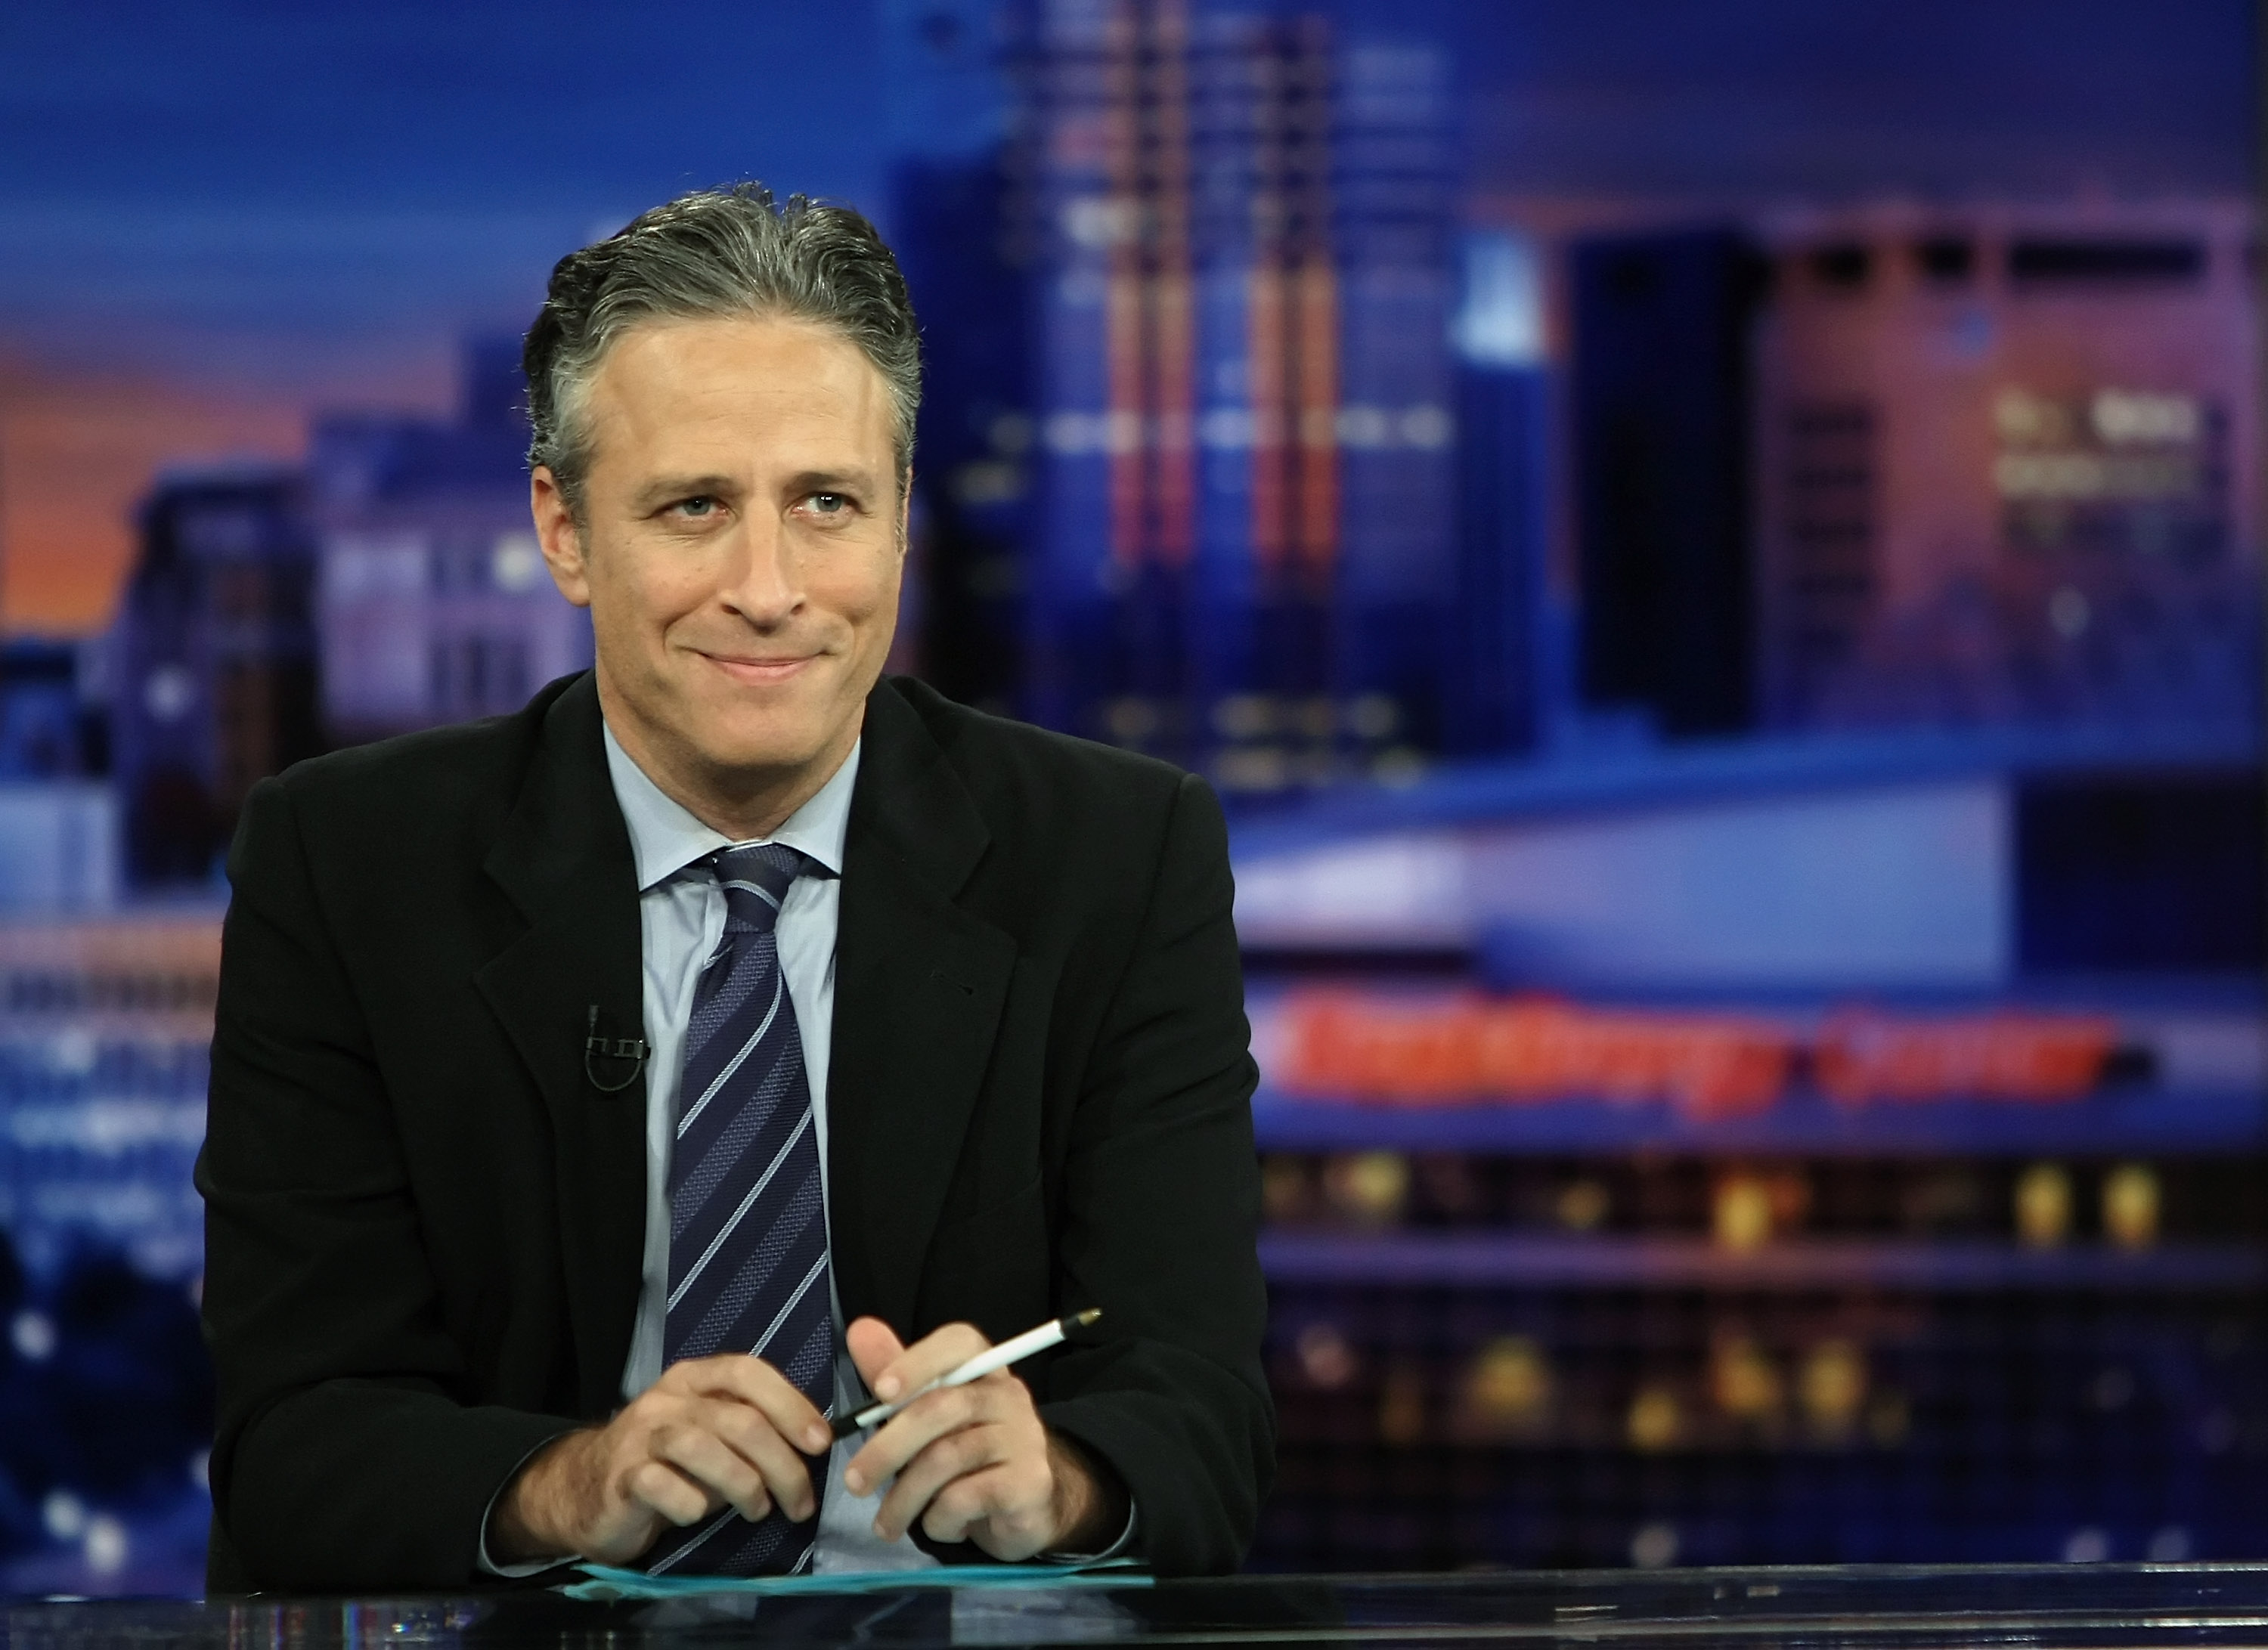 Host Jon Stewart tapes Comedy Central's  The Daily Show with Jon Stewart: Restoring Honor & Dignity to the White House  at the McNally Smith College of Music on Sept. 5, 2008 in St. Paul, Minnesota. The show was being taped in St. Paul during the week of the Republican National Convention.